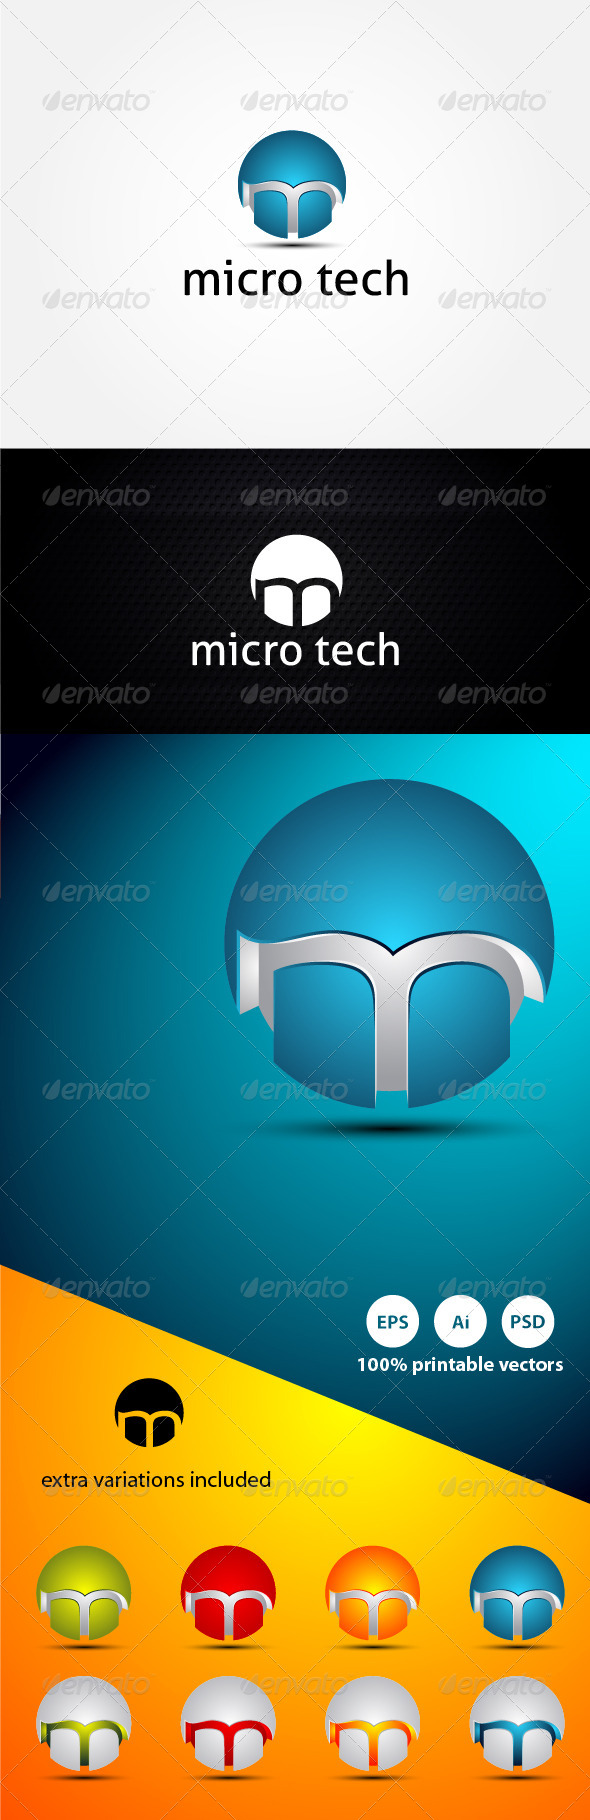 Micro Technology - 3d Abstract